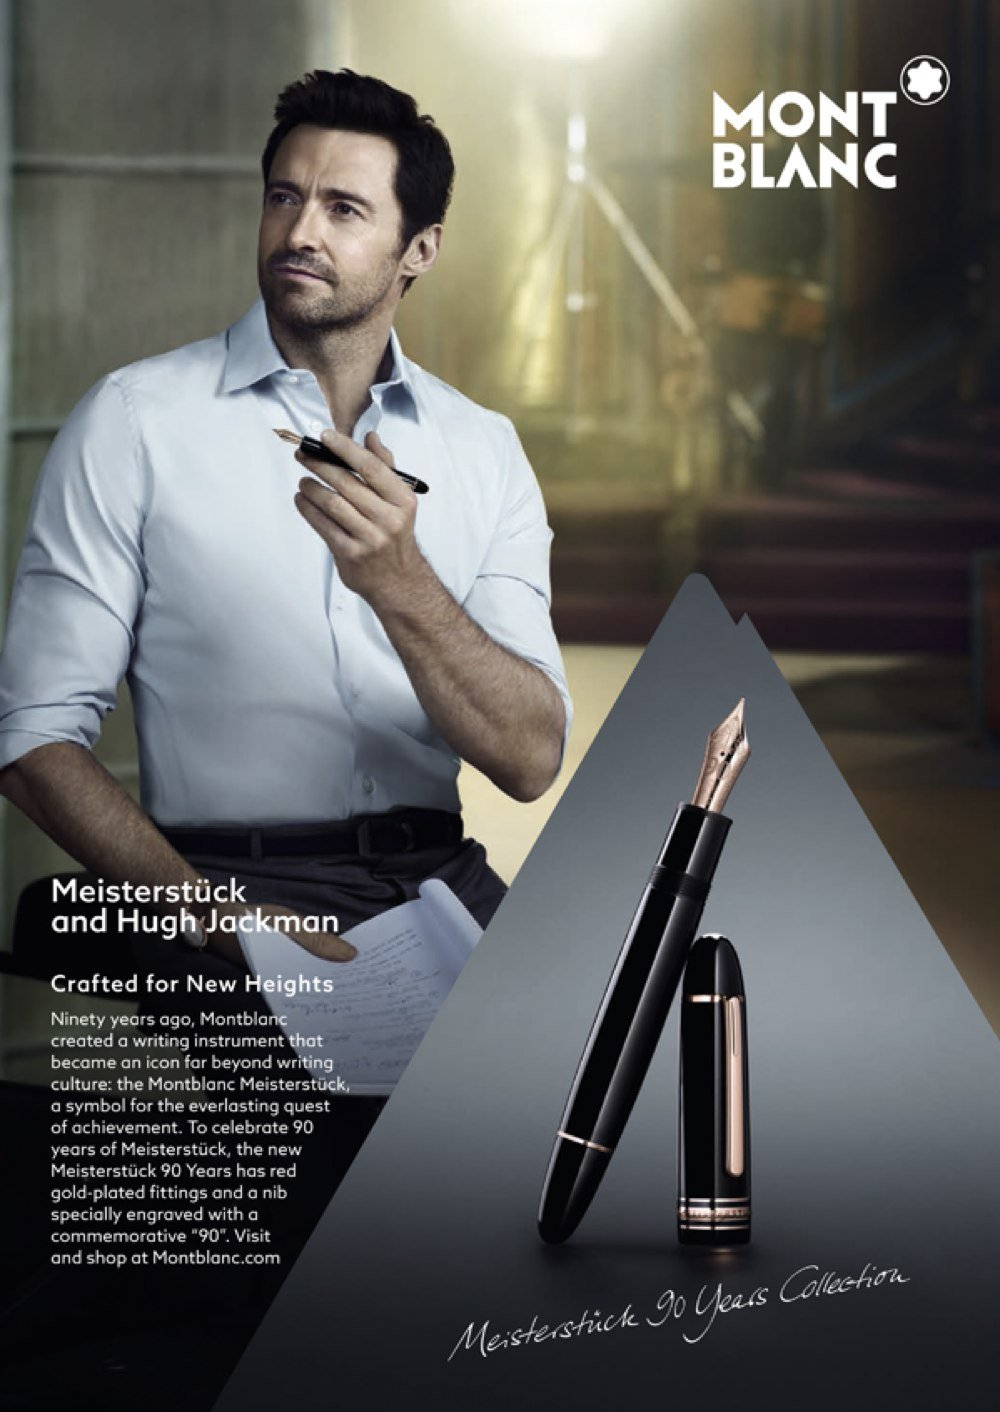 Hugh Jackman on the ad for Montblanc